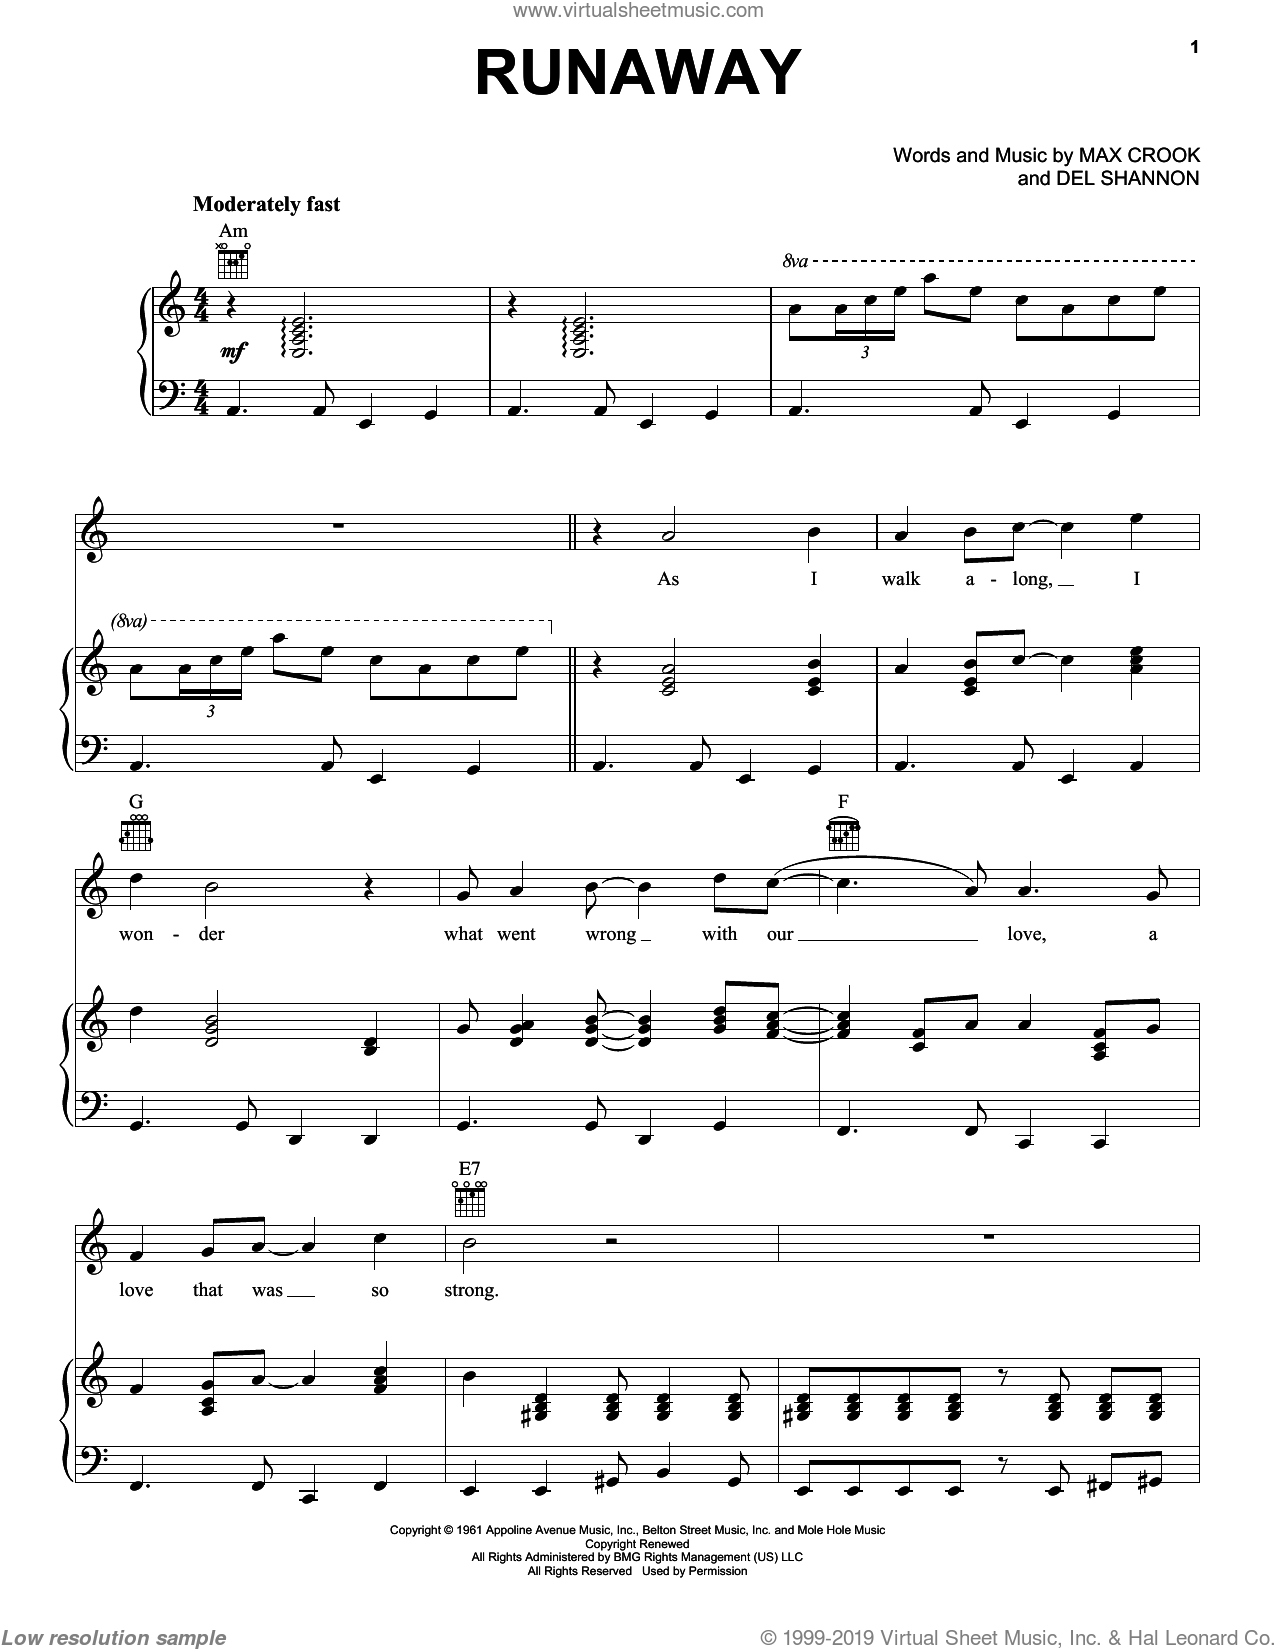 Runaway sheet music for voice, piano or guitar by Max Crook